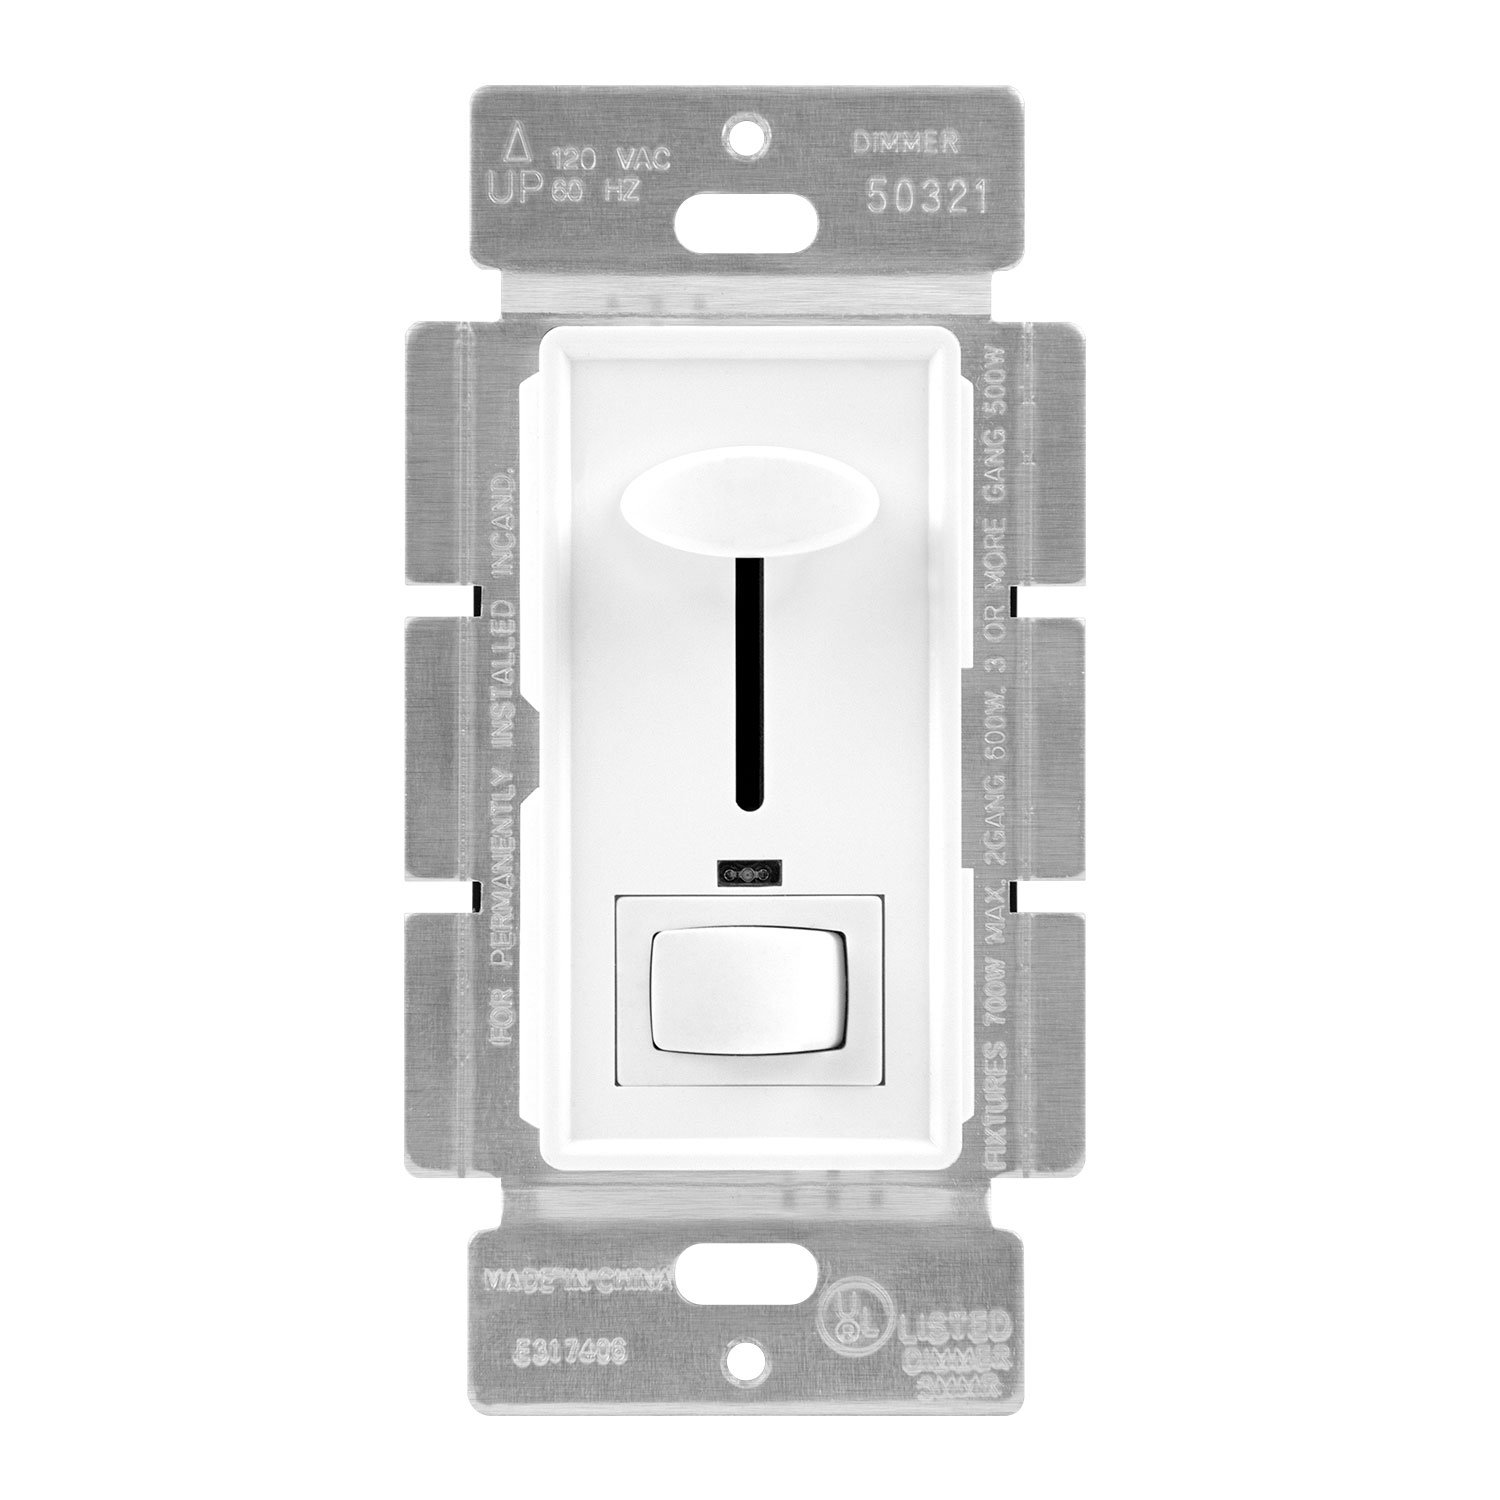 71w8kJ4m0zL._SL1500_ dimmer switches amazon com electrical wall switches lightolier easyset dimmer wiring diagram at bayanpartner.co